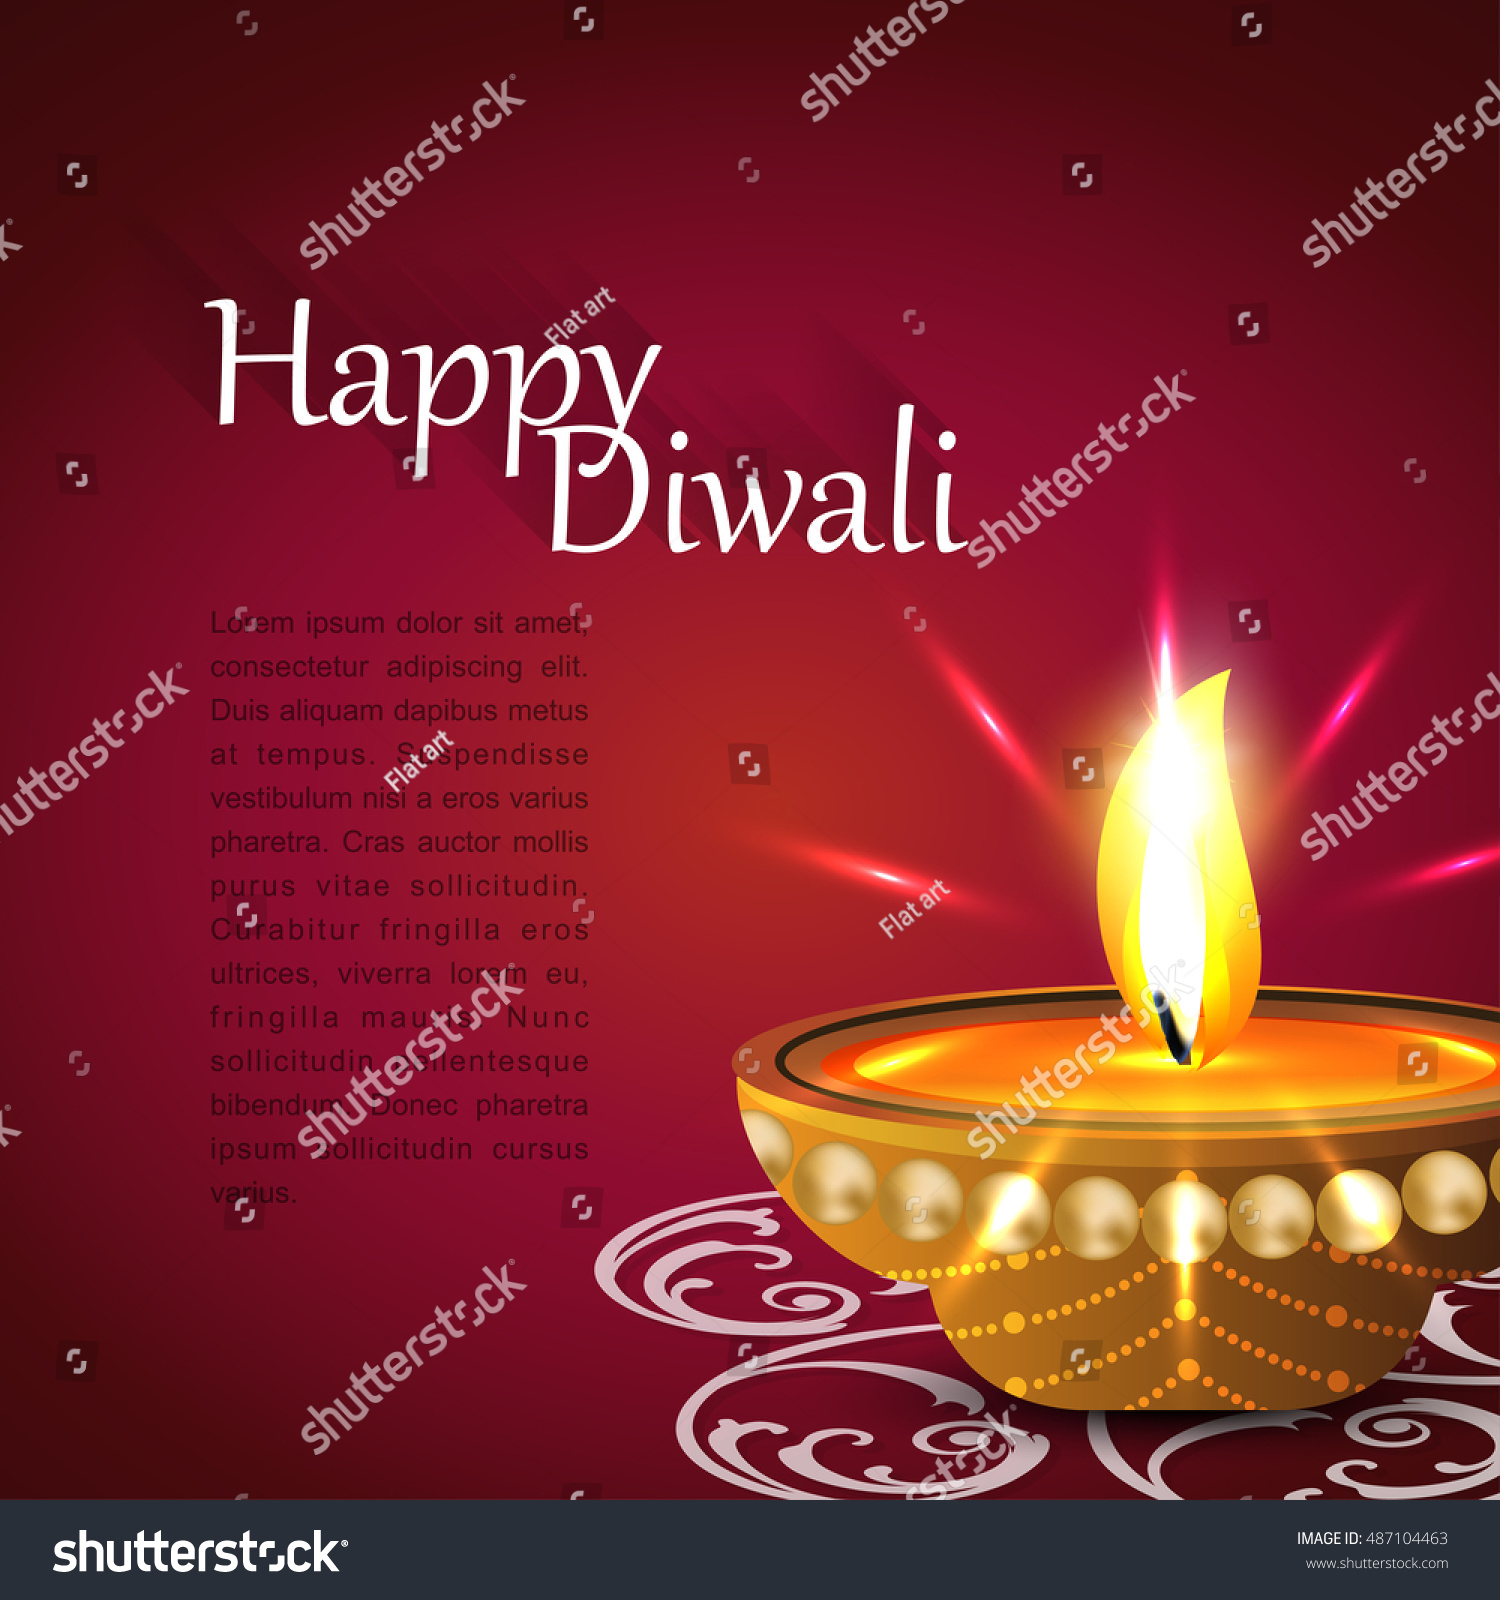 Indian festival lights happy diwali greeting stock vector royalty indian festival of lights happy diwali greeting card ancient hindu festival of lights m4hsunfo